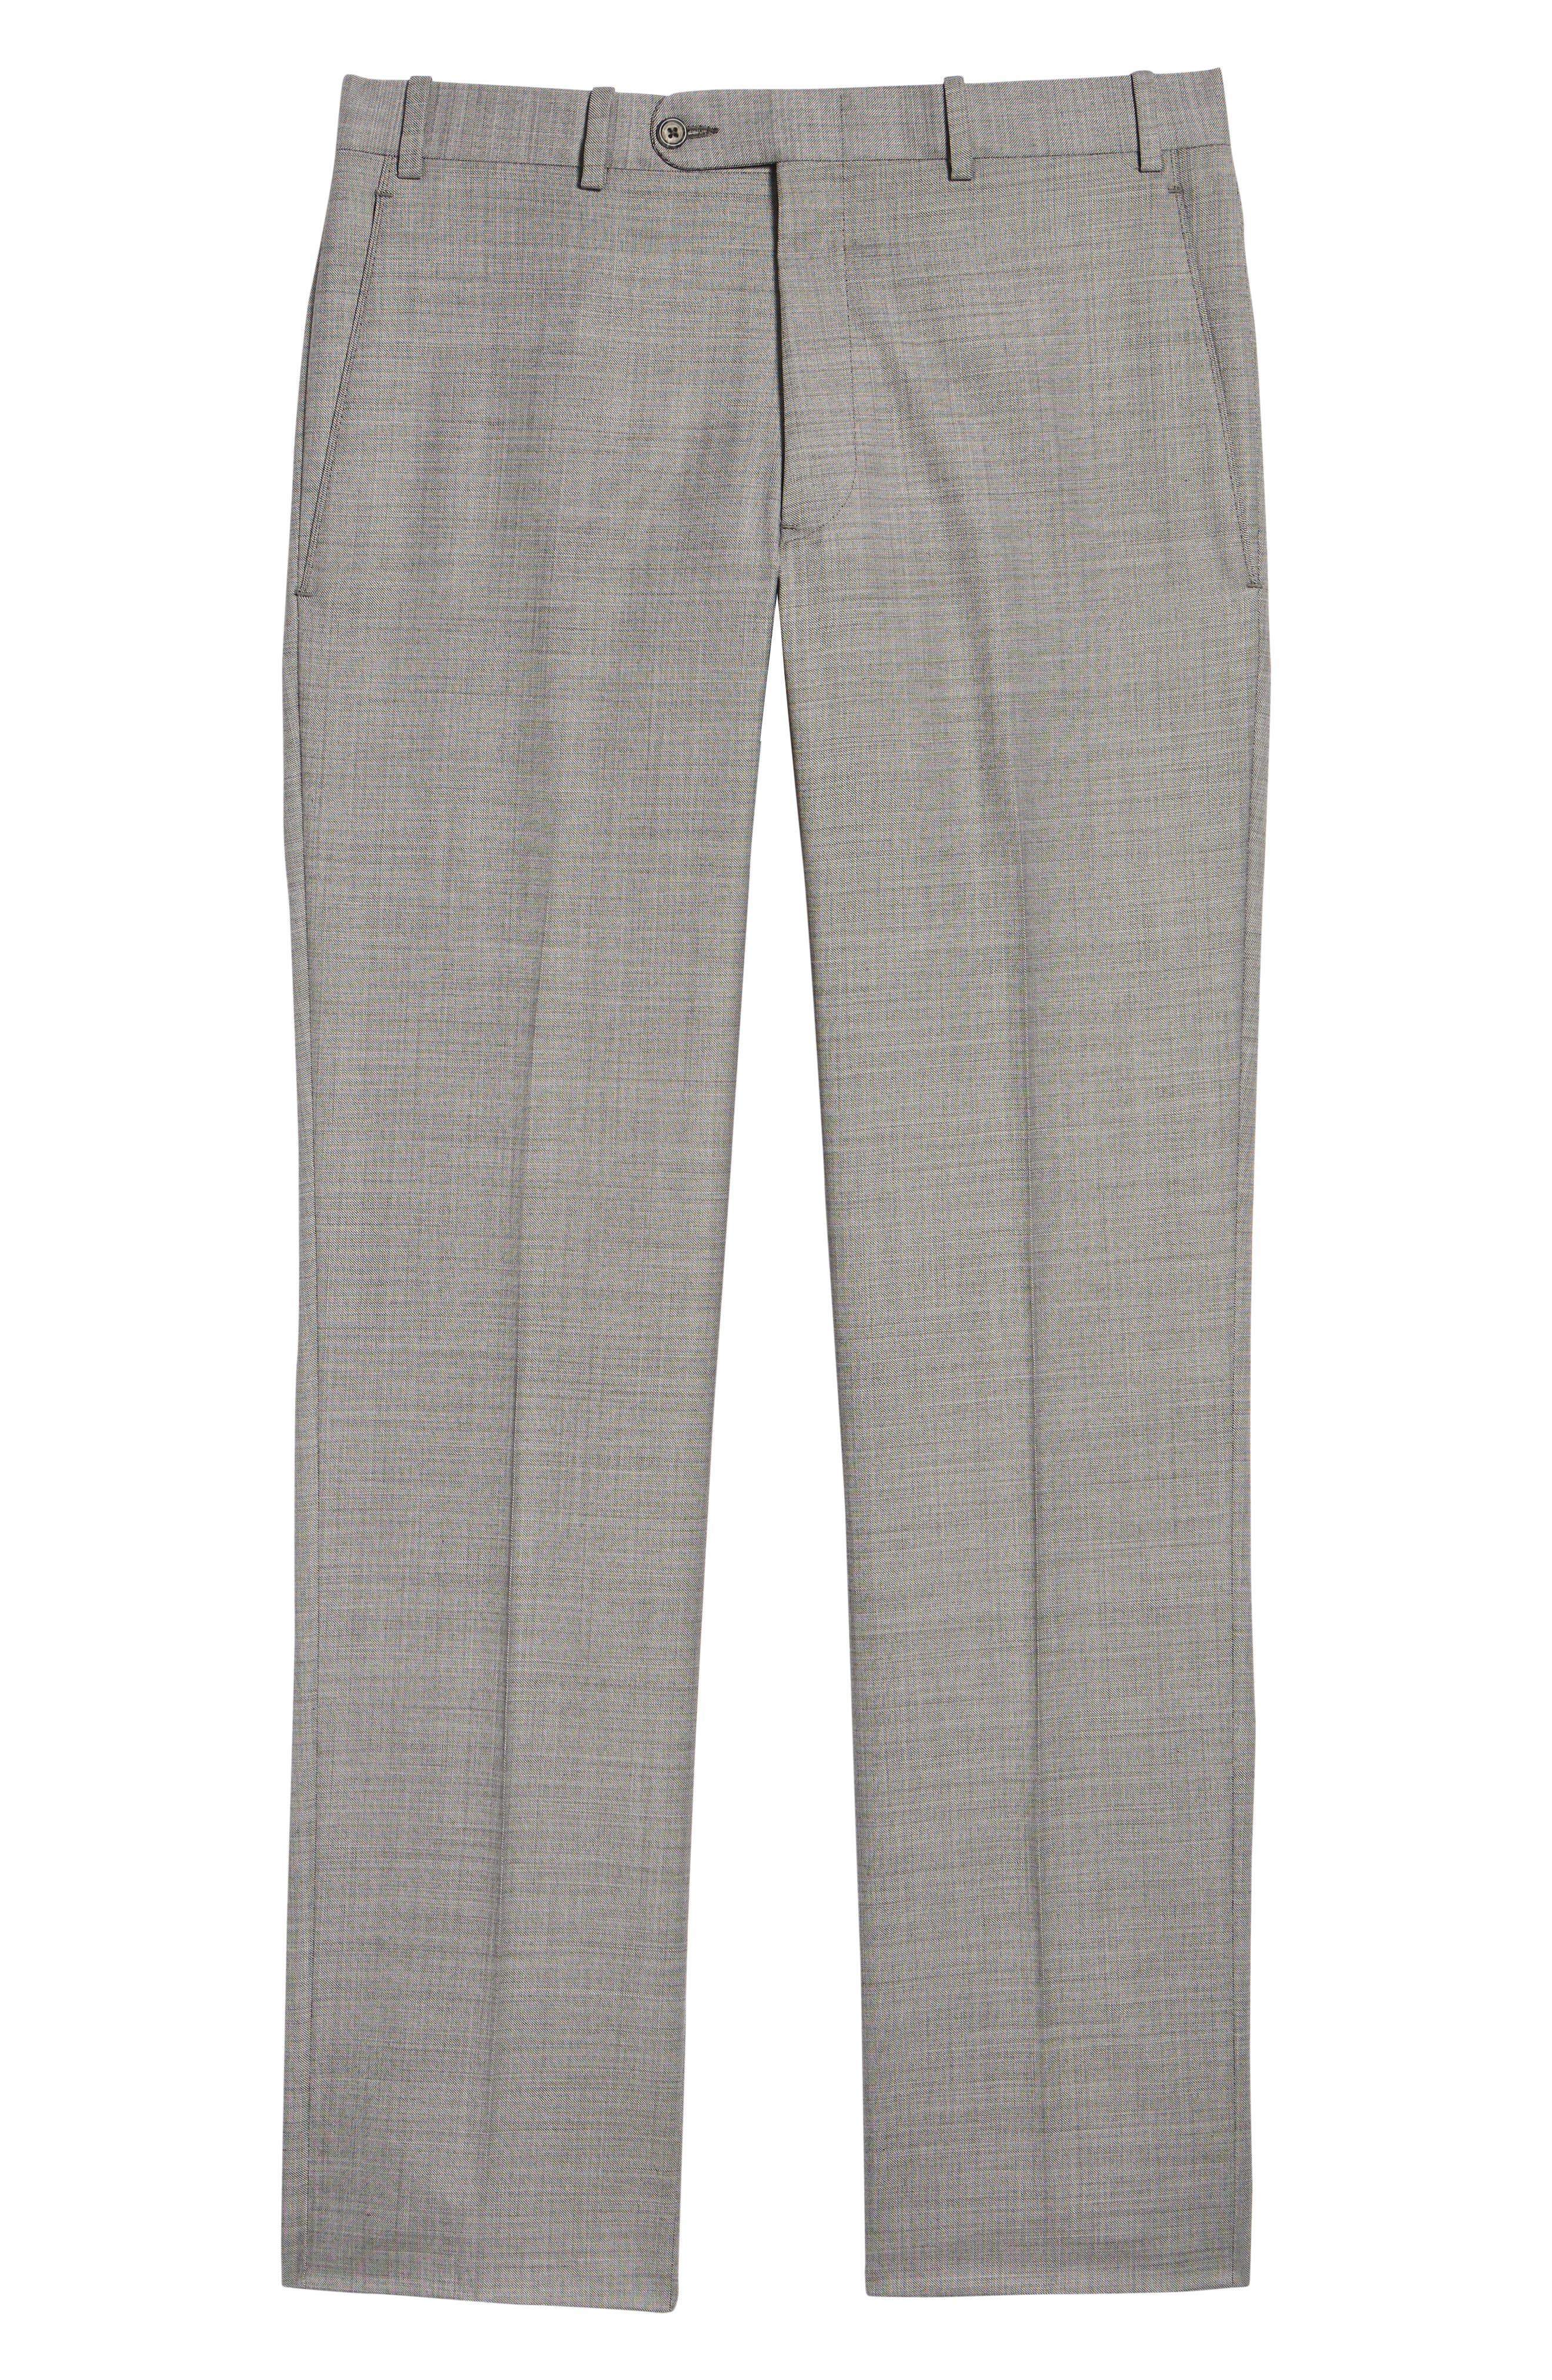 Traditional Fit Flat Front Solid Wool Trousers,                             Alternate thumbnail 6, color,                             GREY PEARL